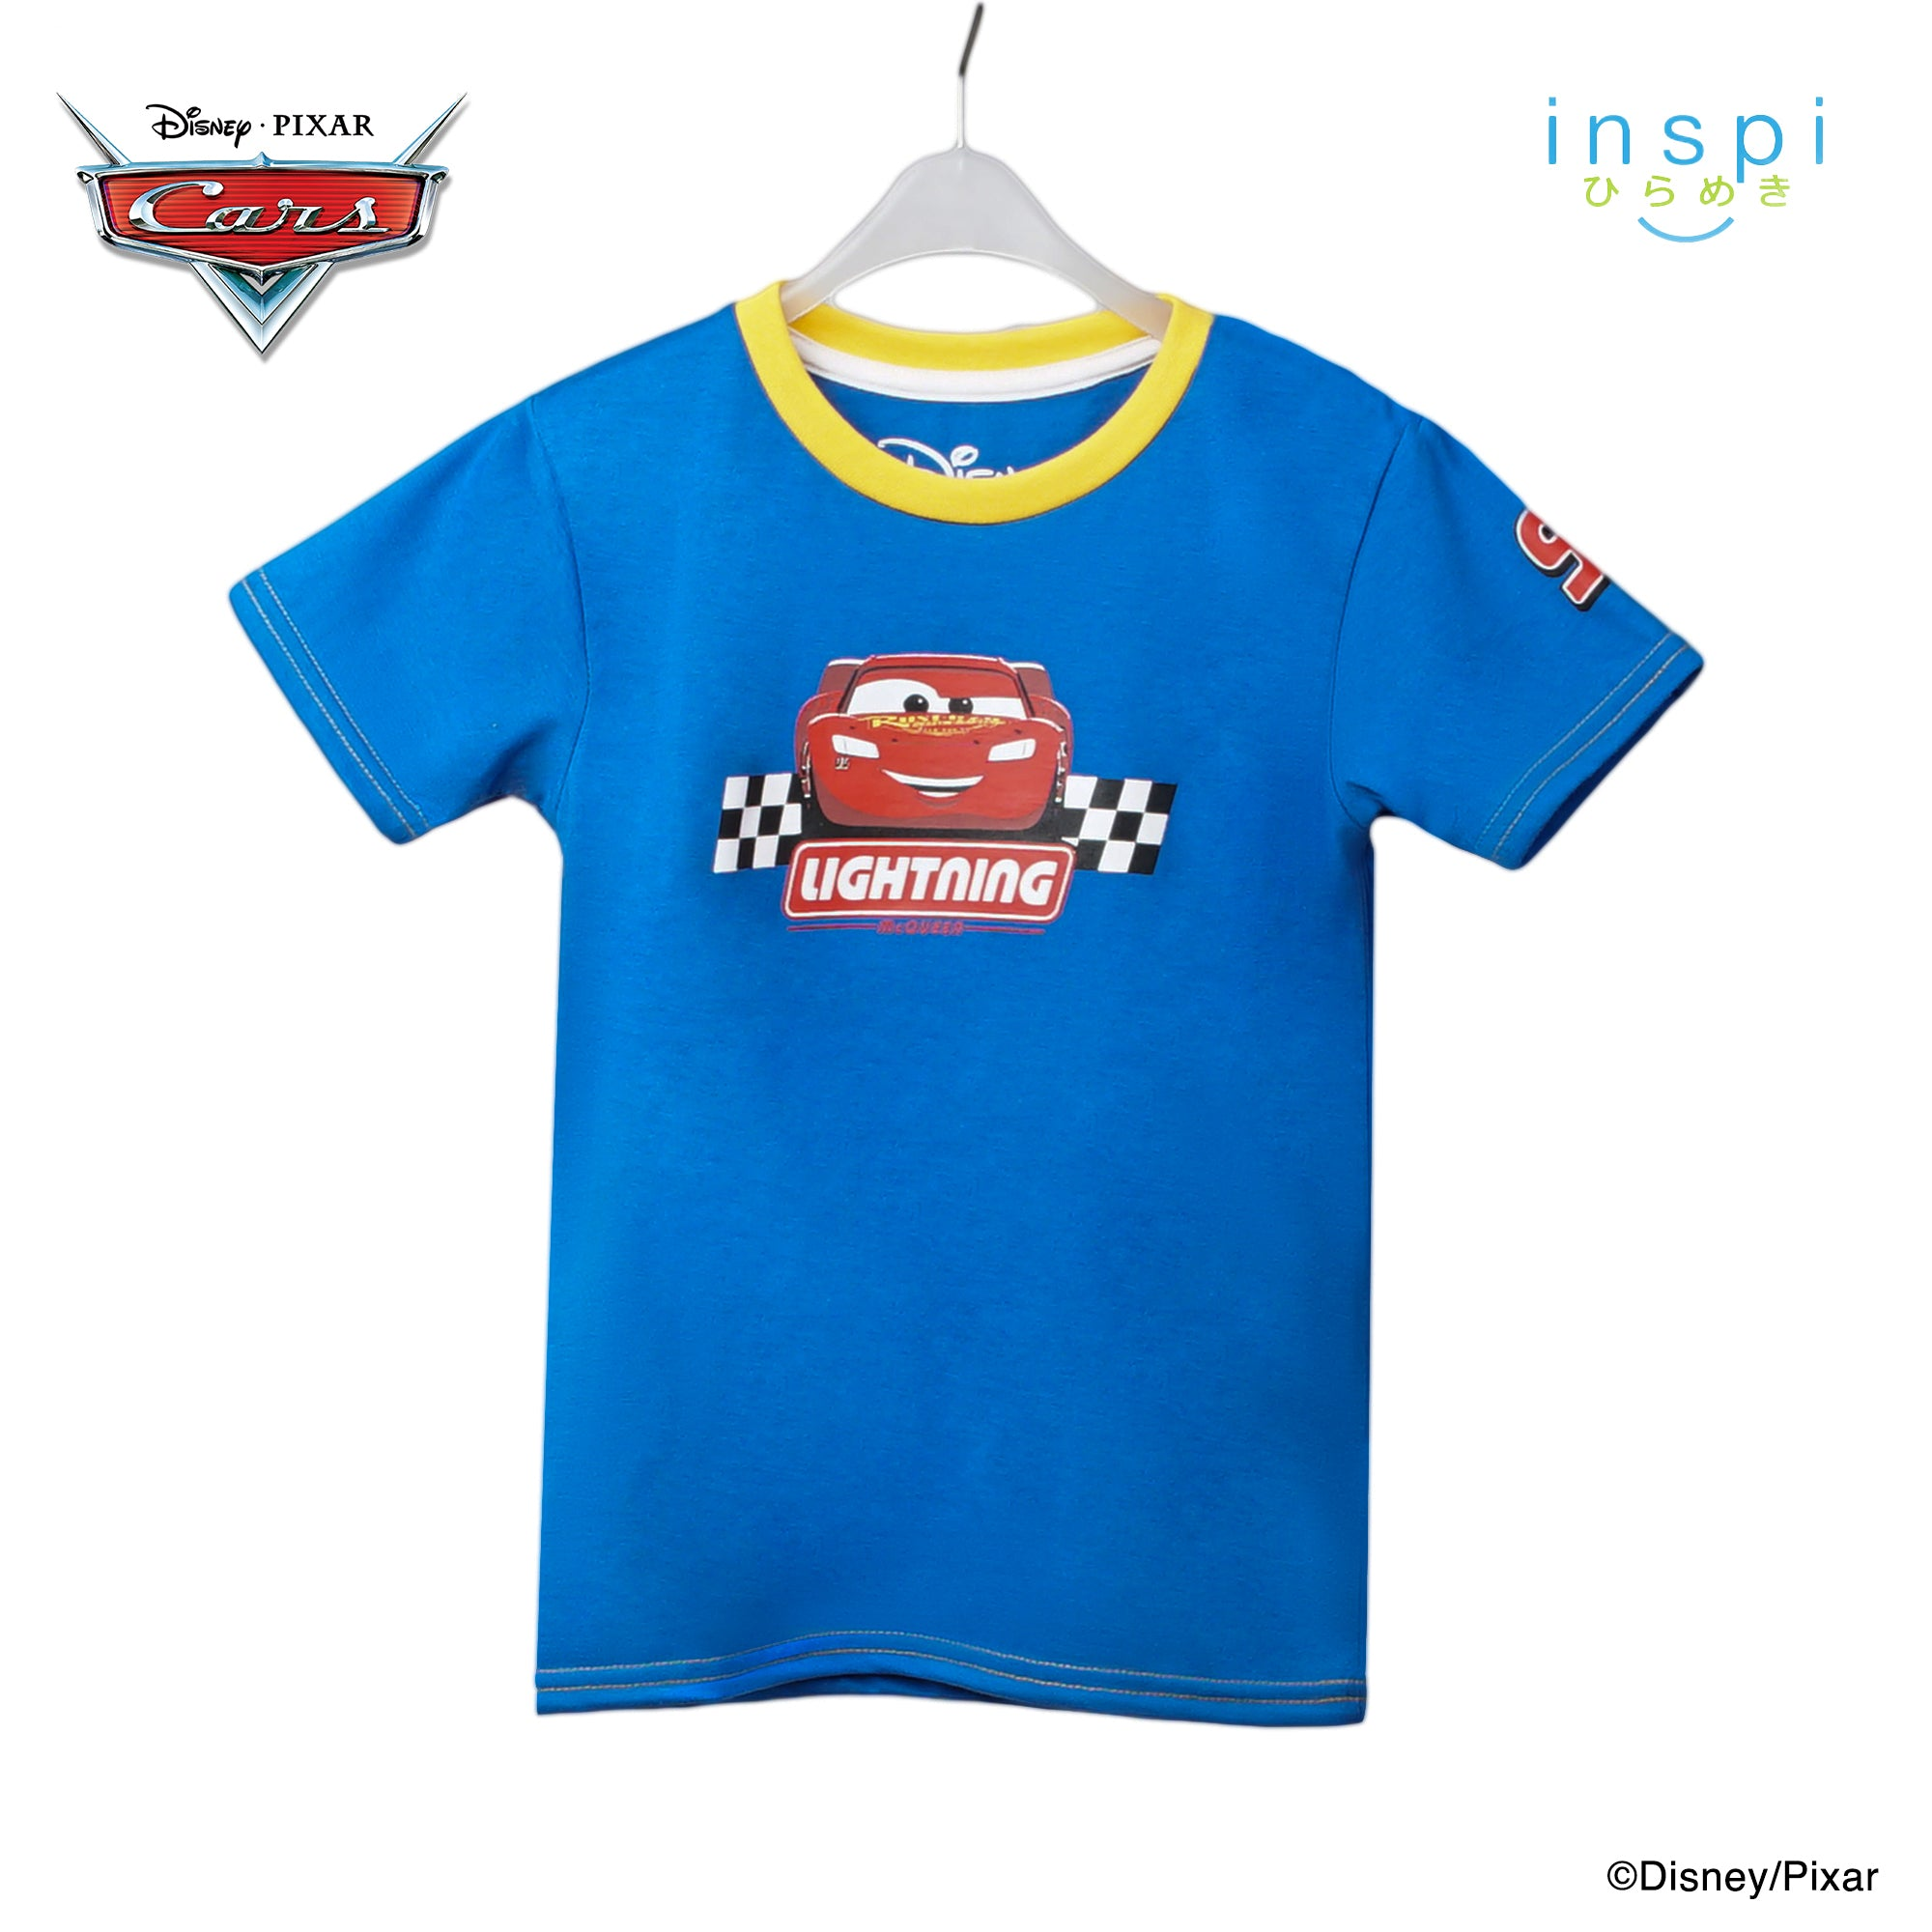 Disney Cars Lightning McQueen Tshirt in Light Blue for Boys Inspi Shirt